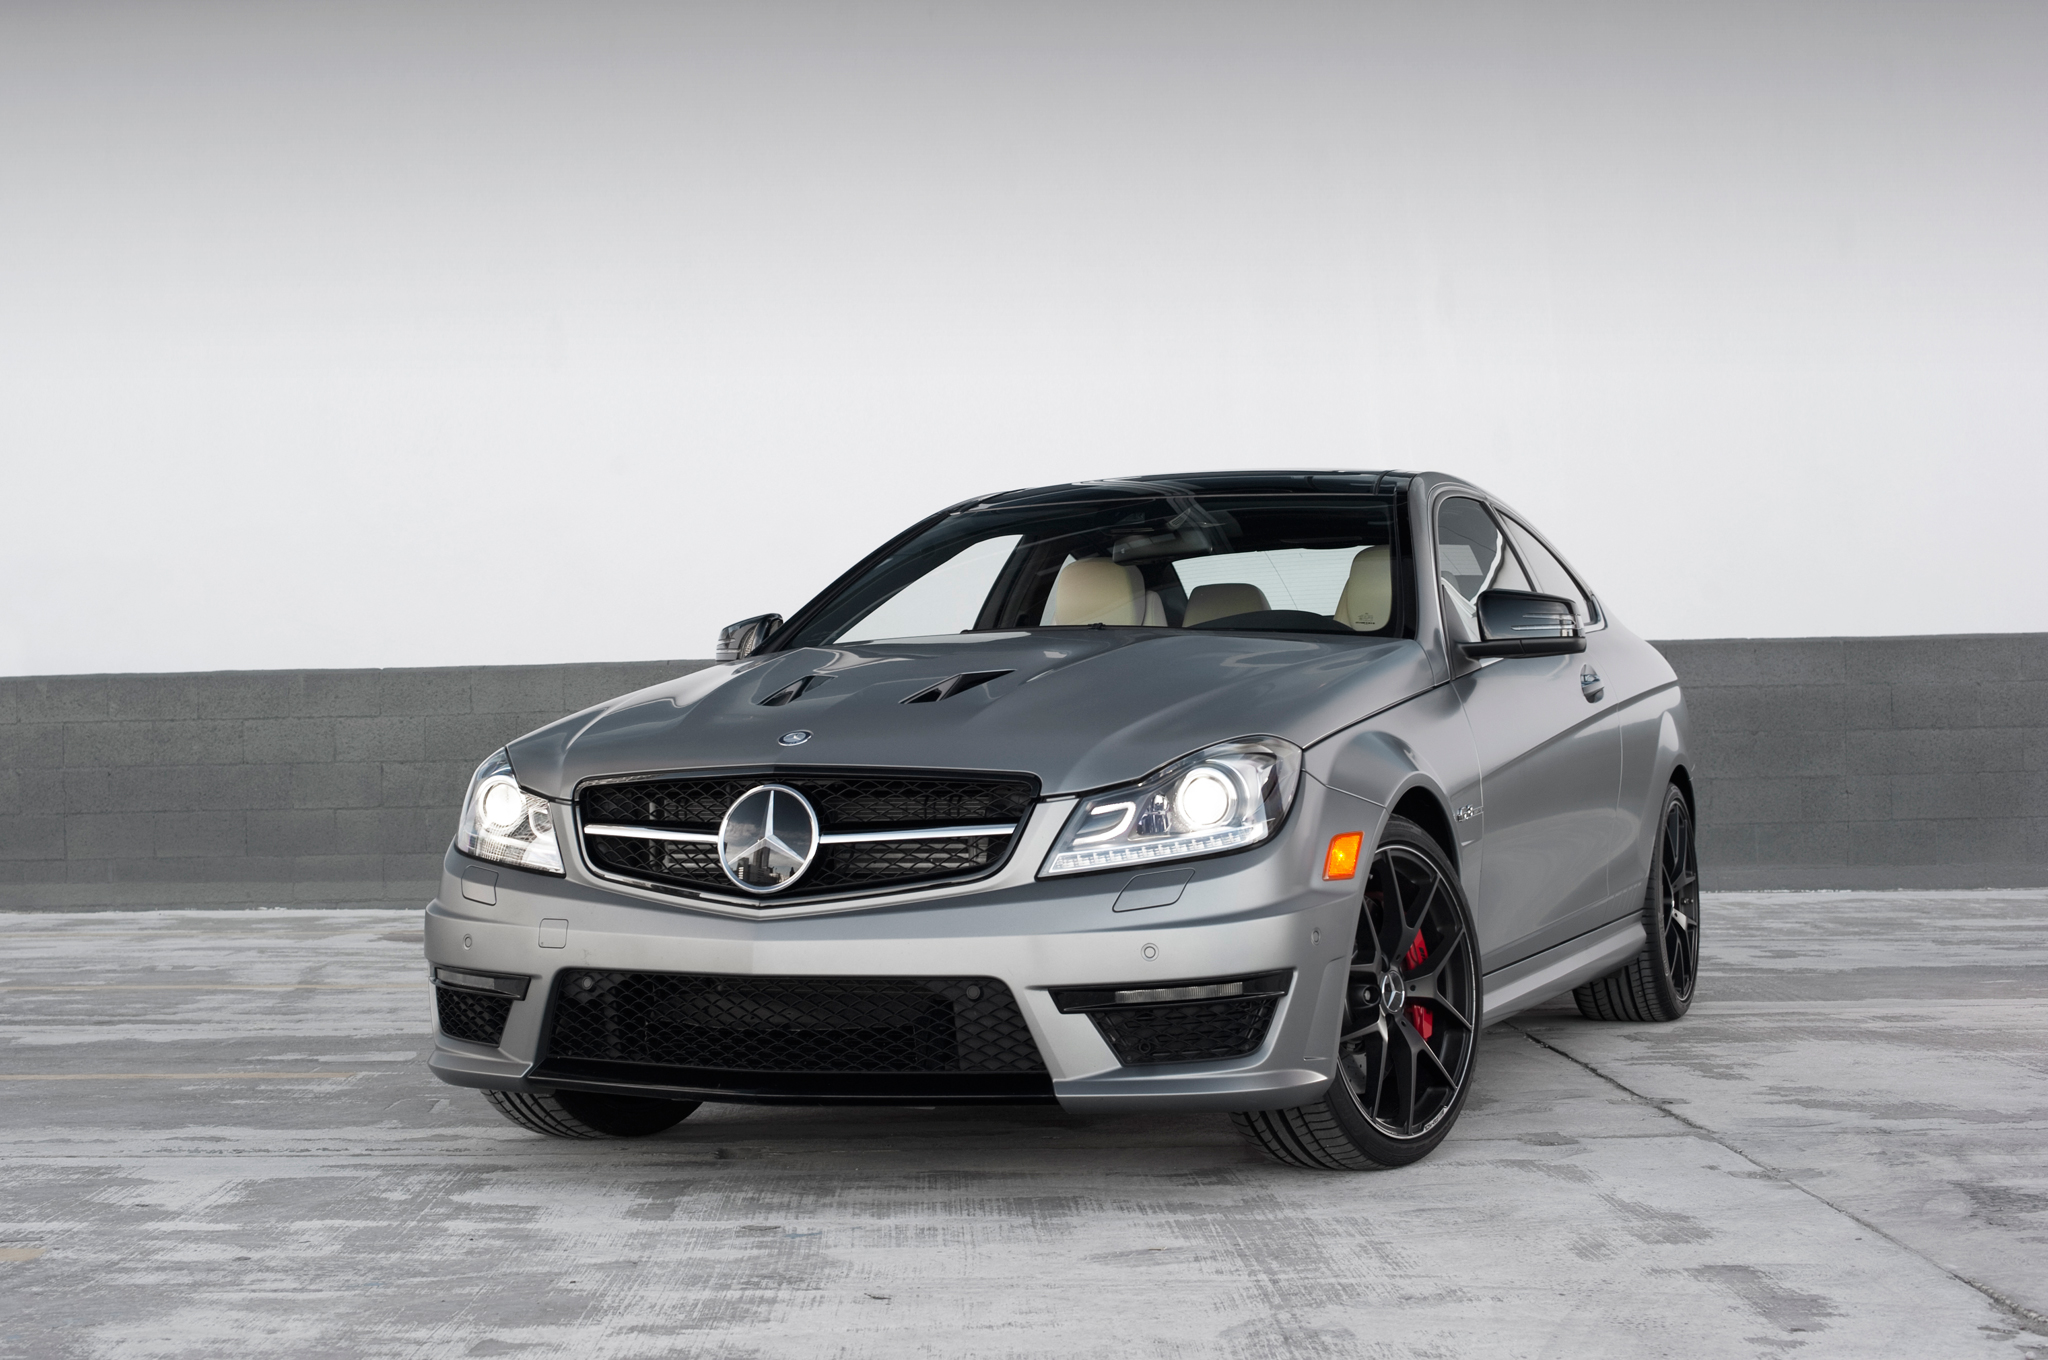 2019 Mercedes Benz C63 AMG Edition 507 photo - 6